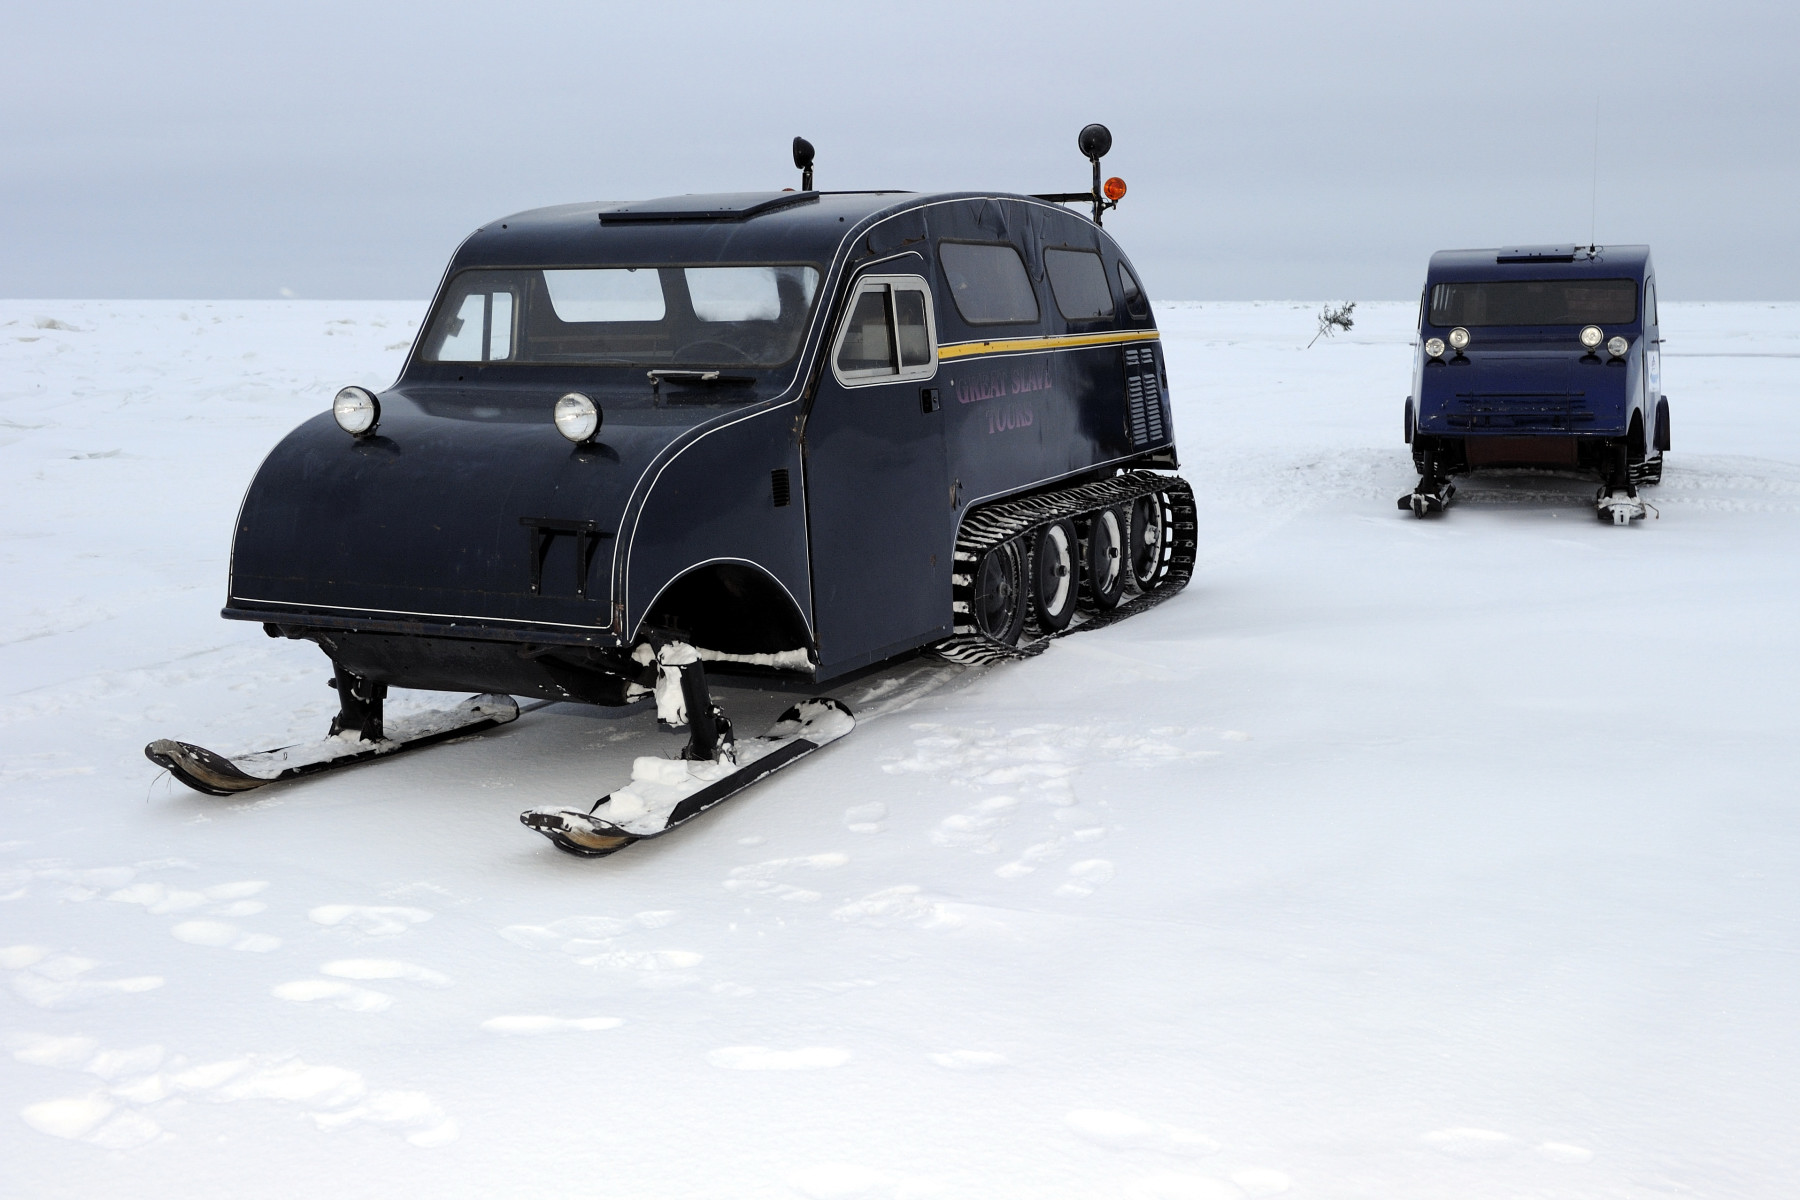 Their Excellencies were transported by old Bombardier snowmobile where they visited the ice fishing fields on Great Slave Lake in the Northwest Territories.